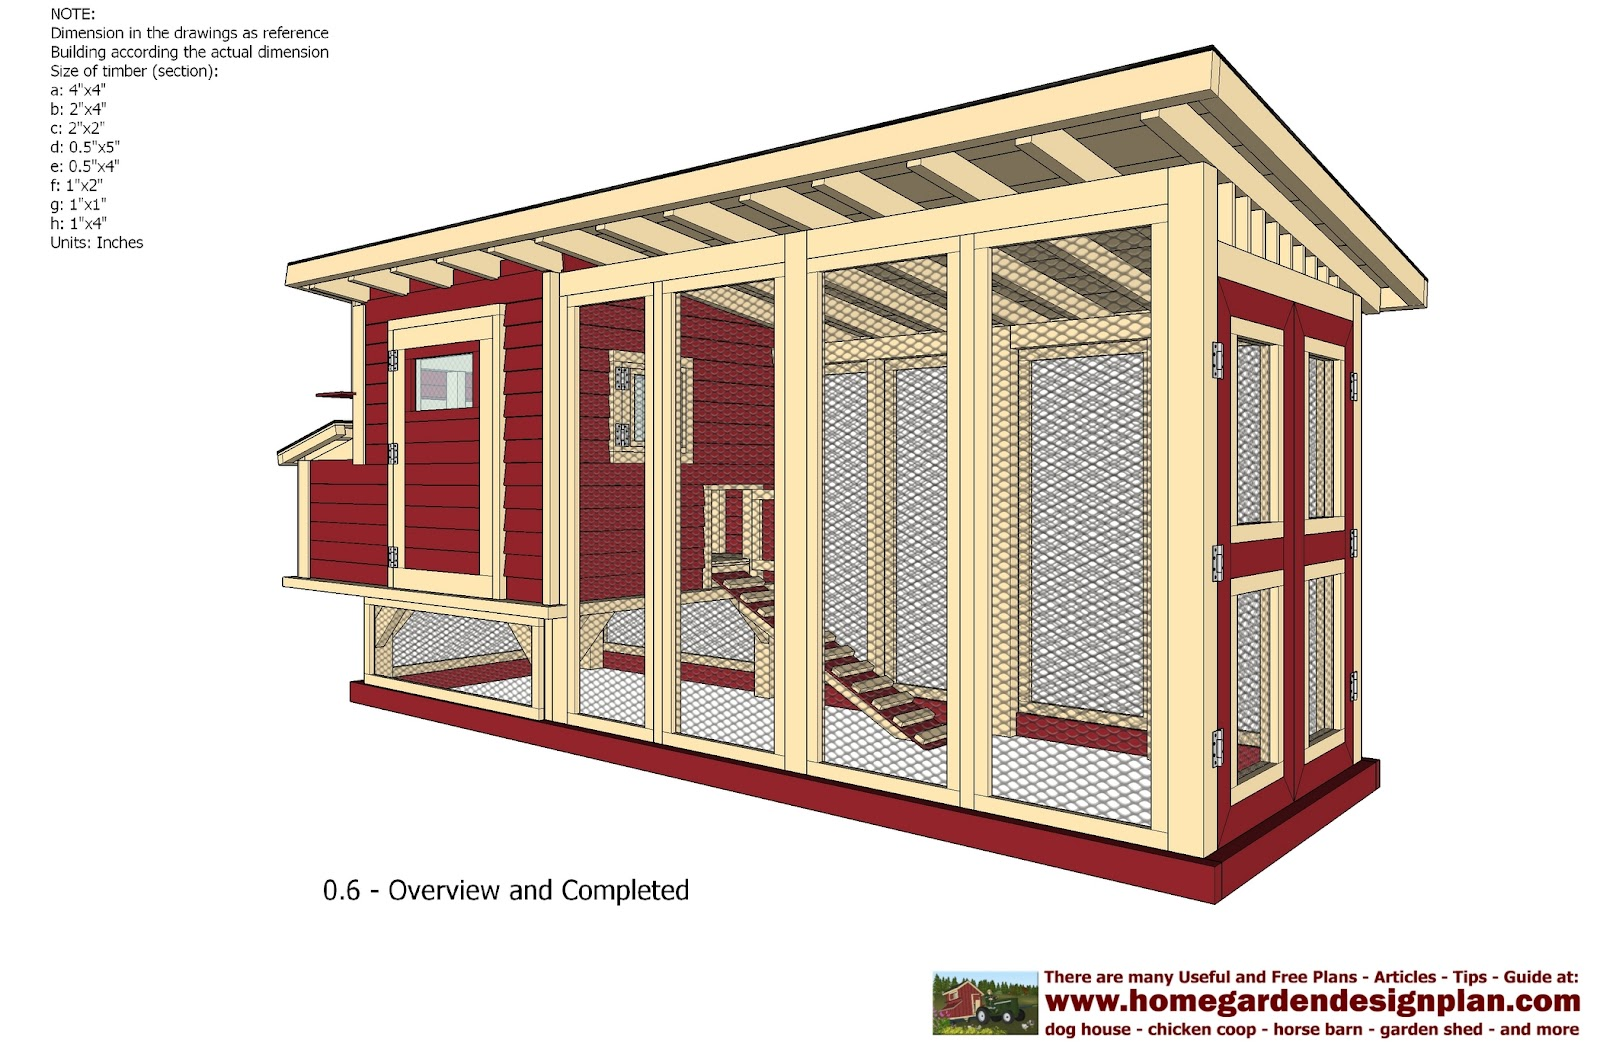 Pigeon house plans and photos - Pigeon House Plans Pdf